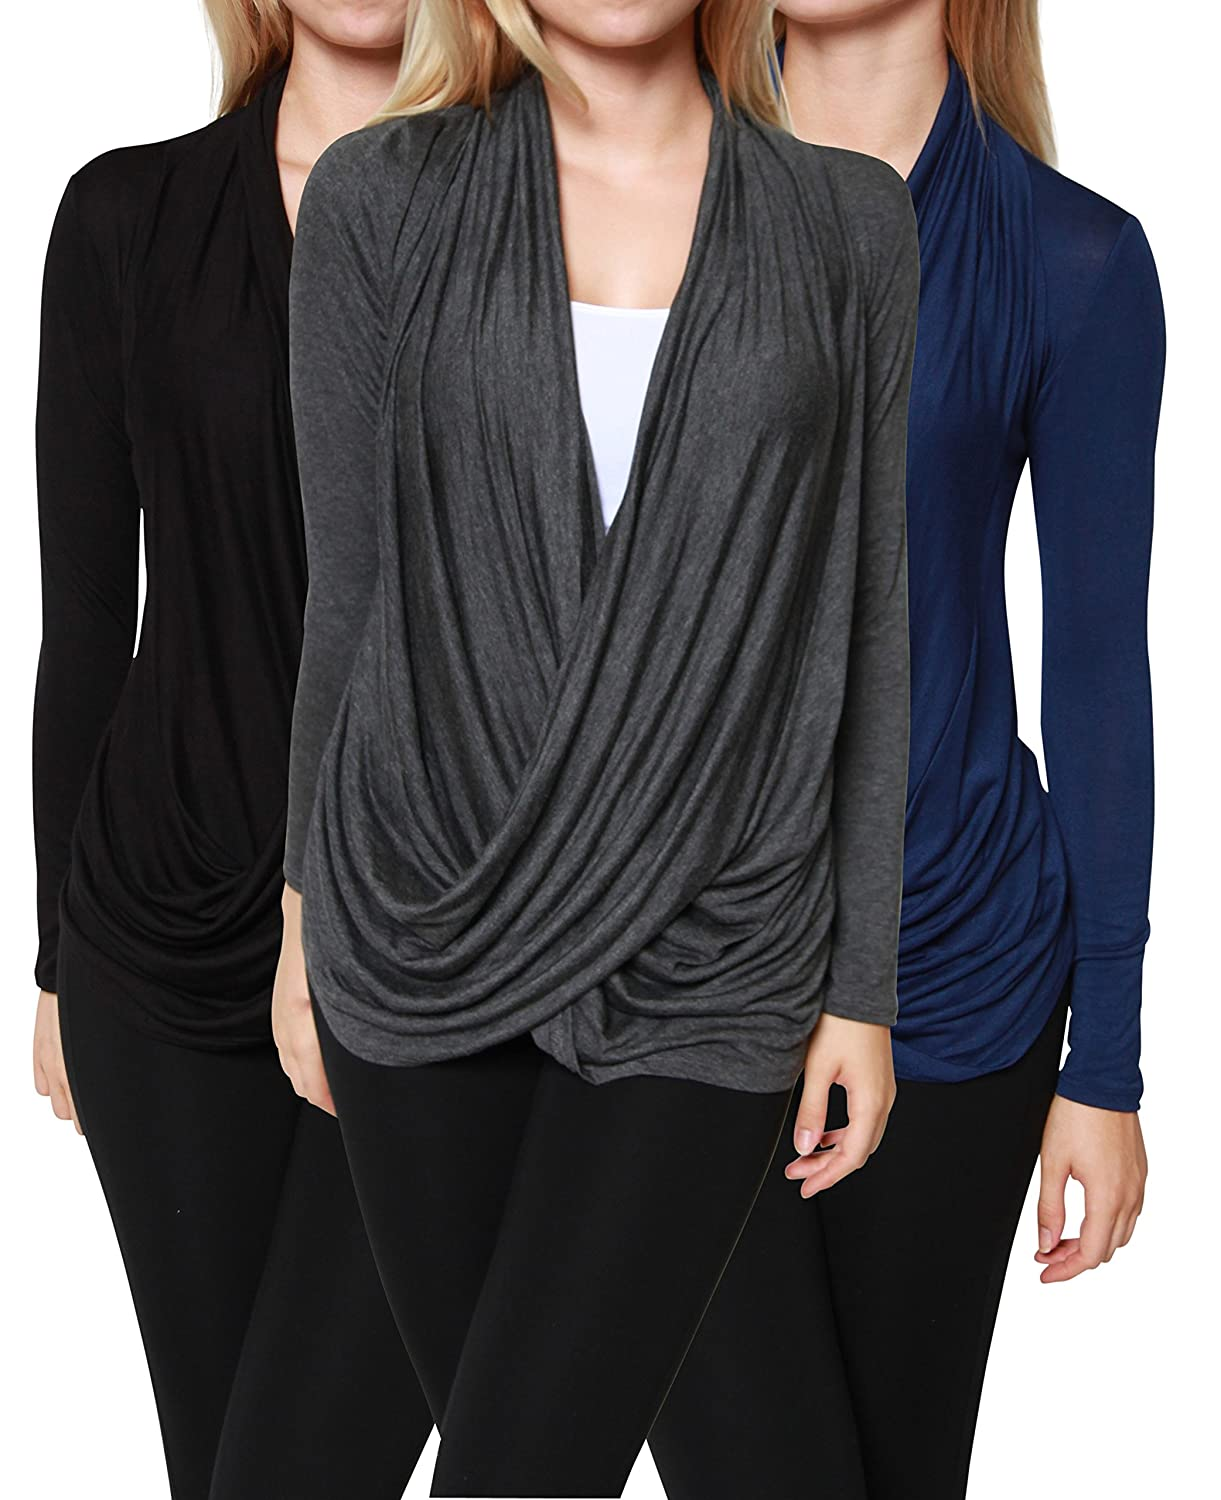 3-Pack: Free to Live Women's Lightweight Criss Cross Cardigans ...